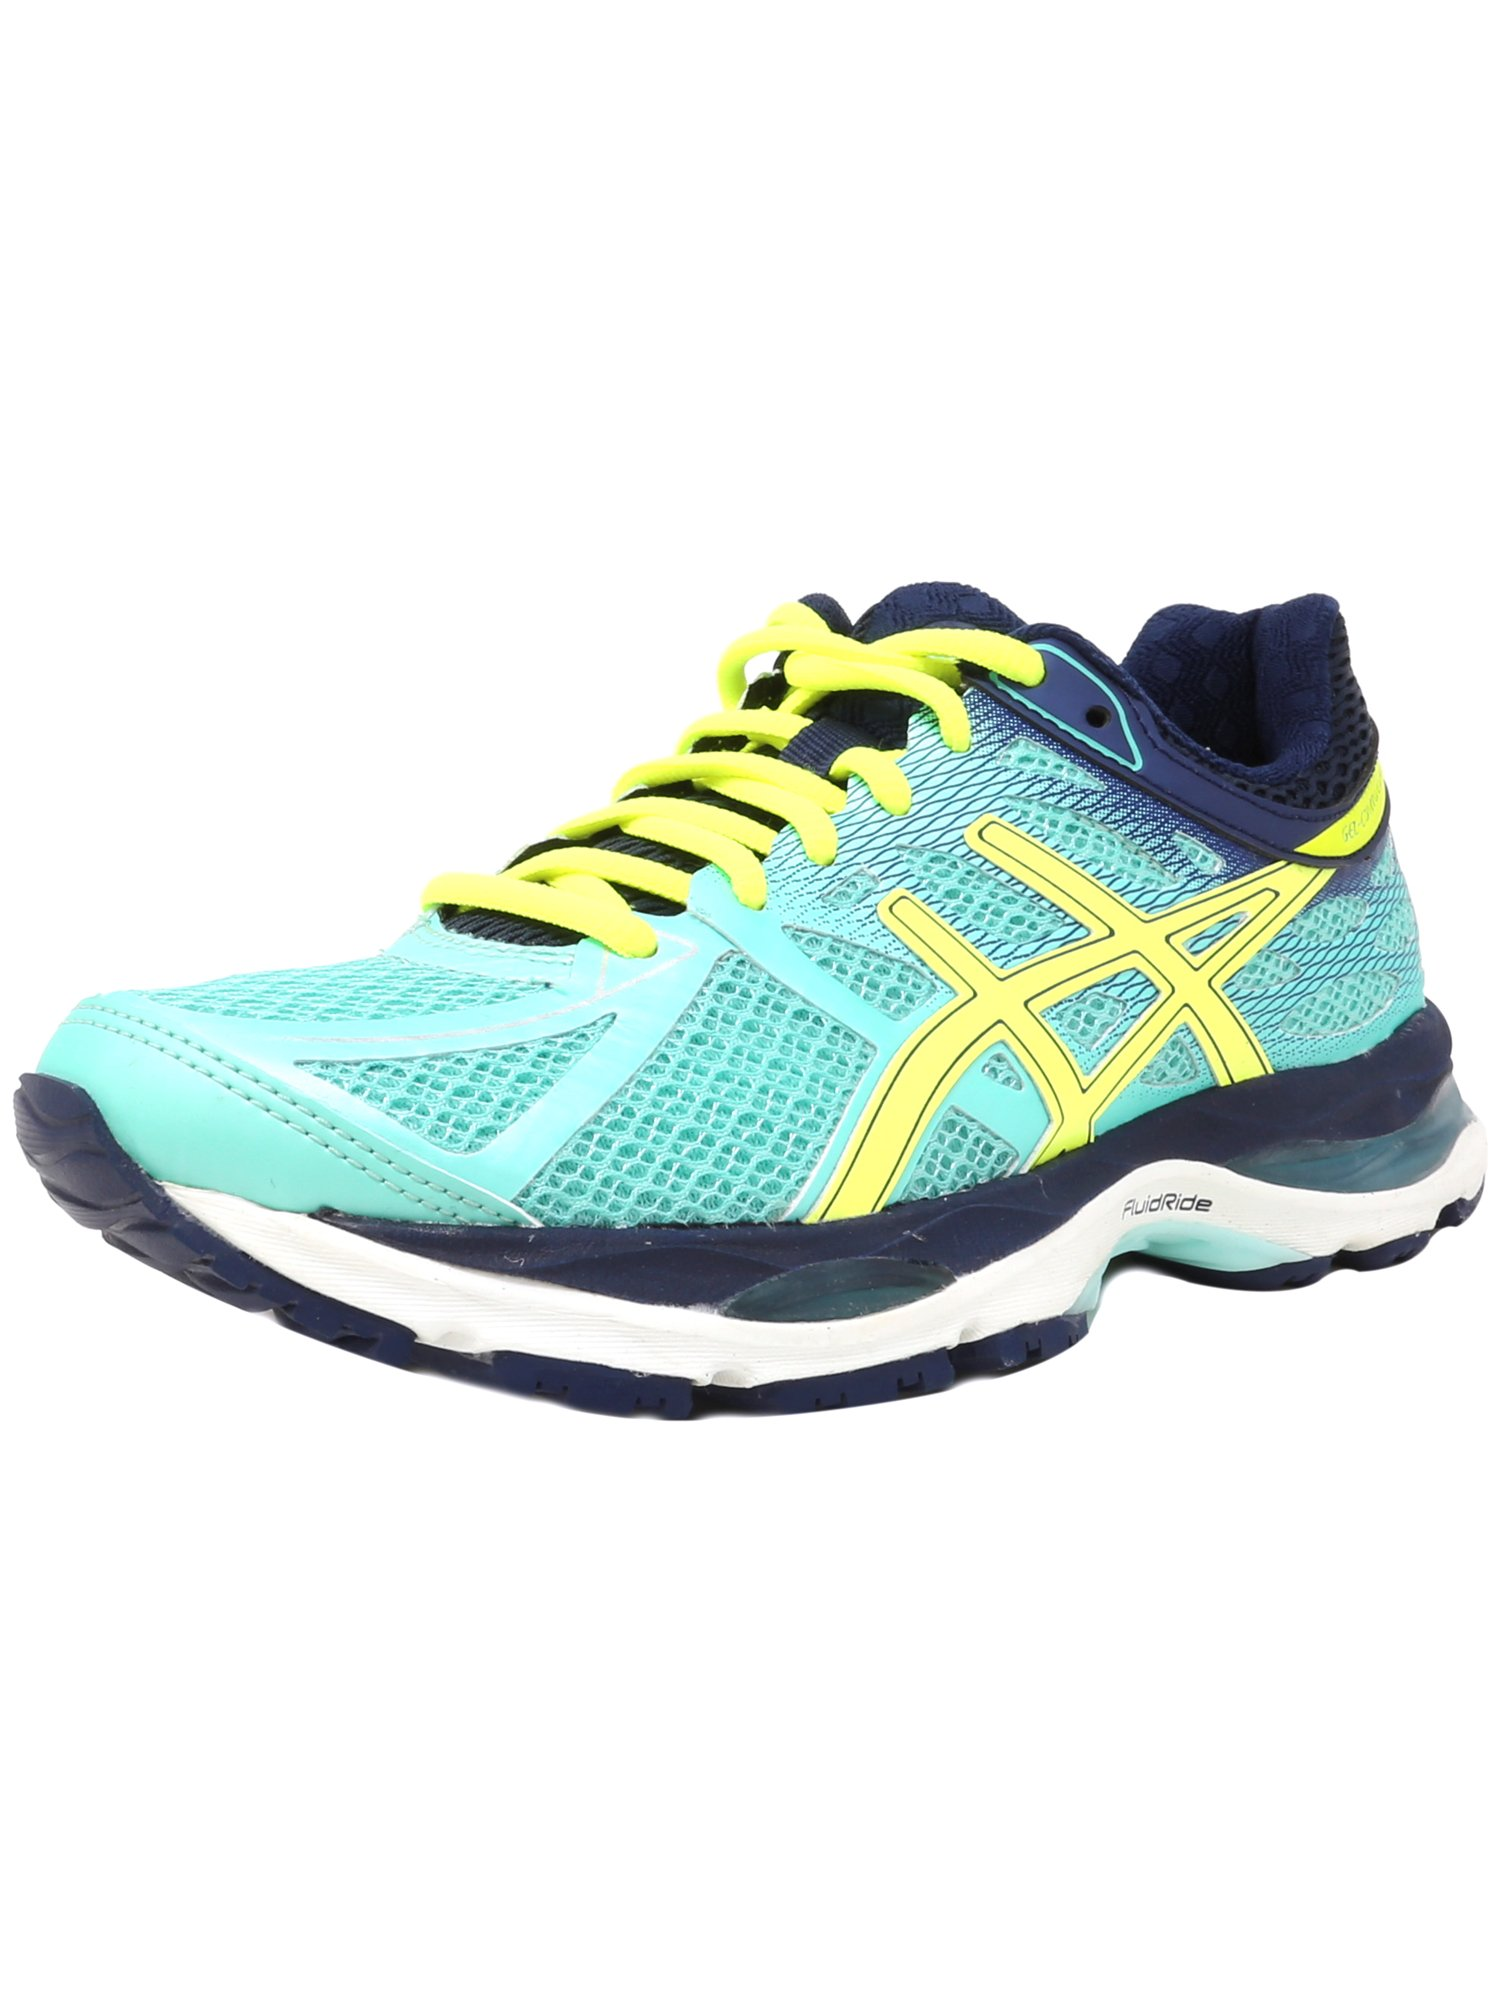 Asics Women's Gel Cumulus 17 Aqua Mint Flash Yellow Navy Ankle High Running Shoe 5.5N